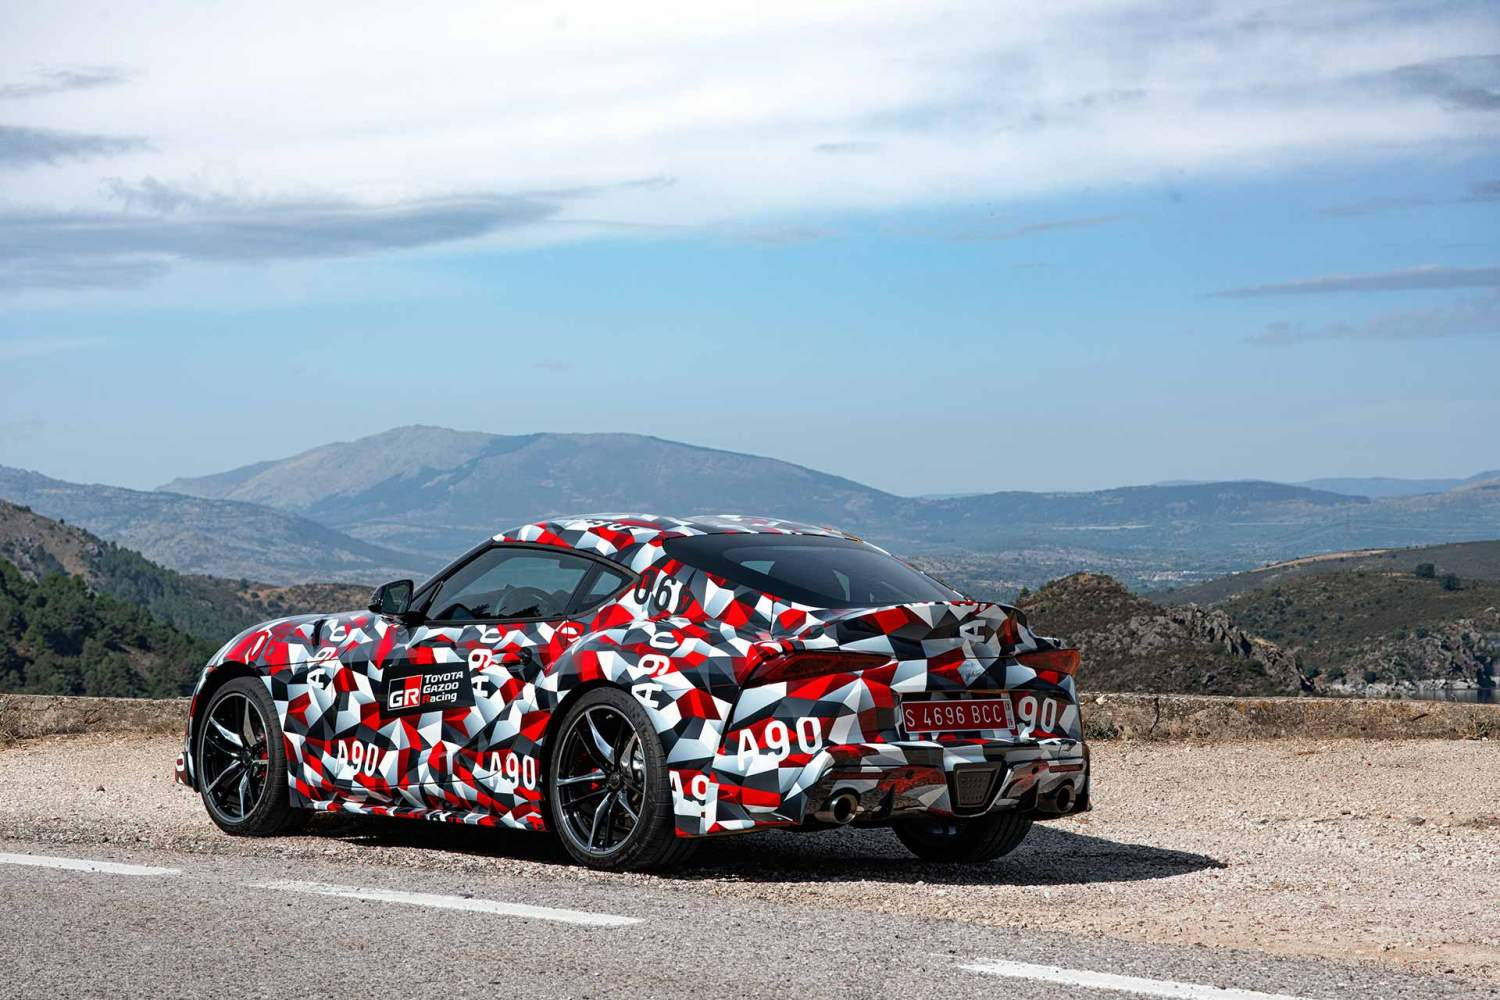 2019 Toyota Supra images leaked ahead of Detroit Auto Show debut